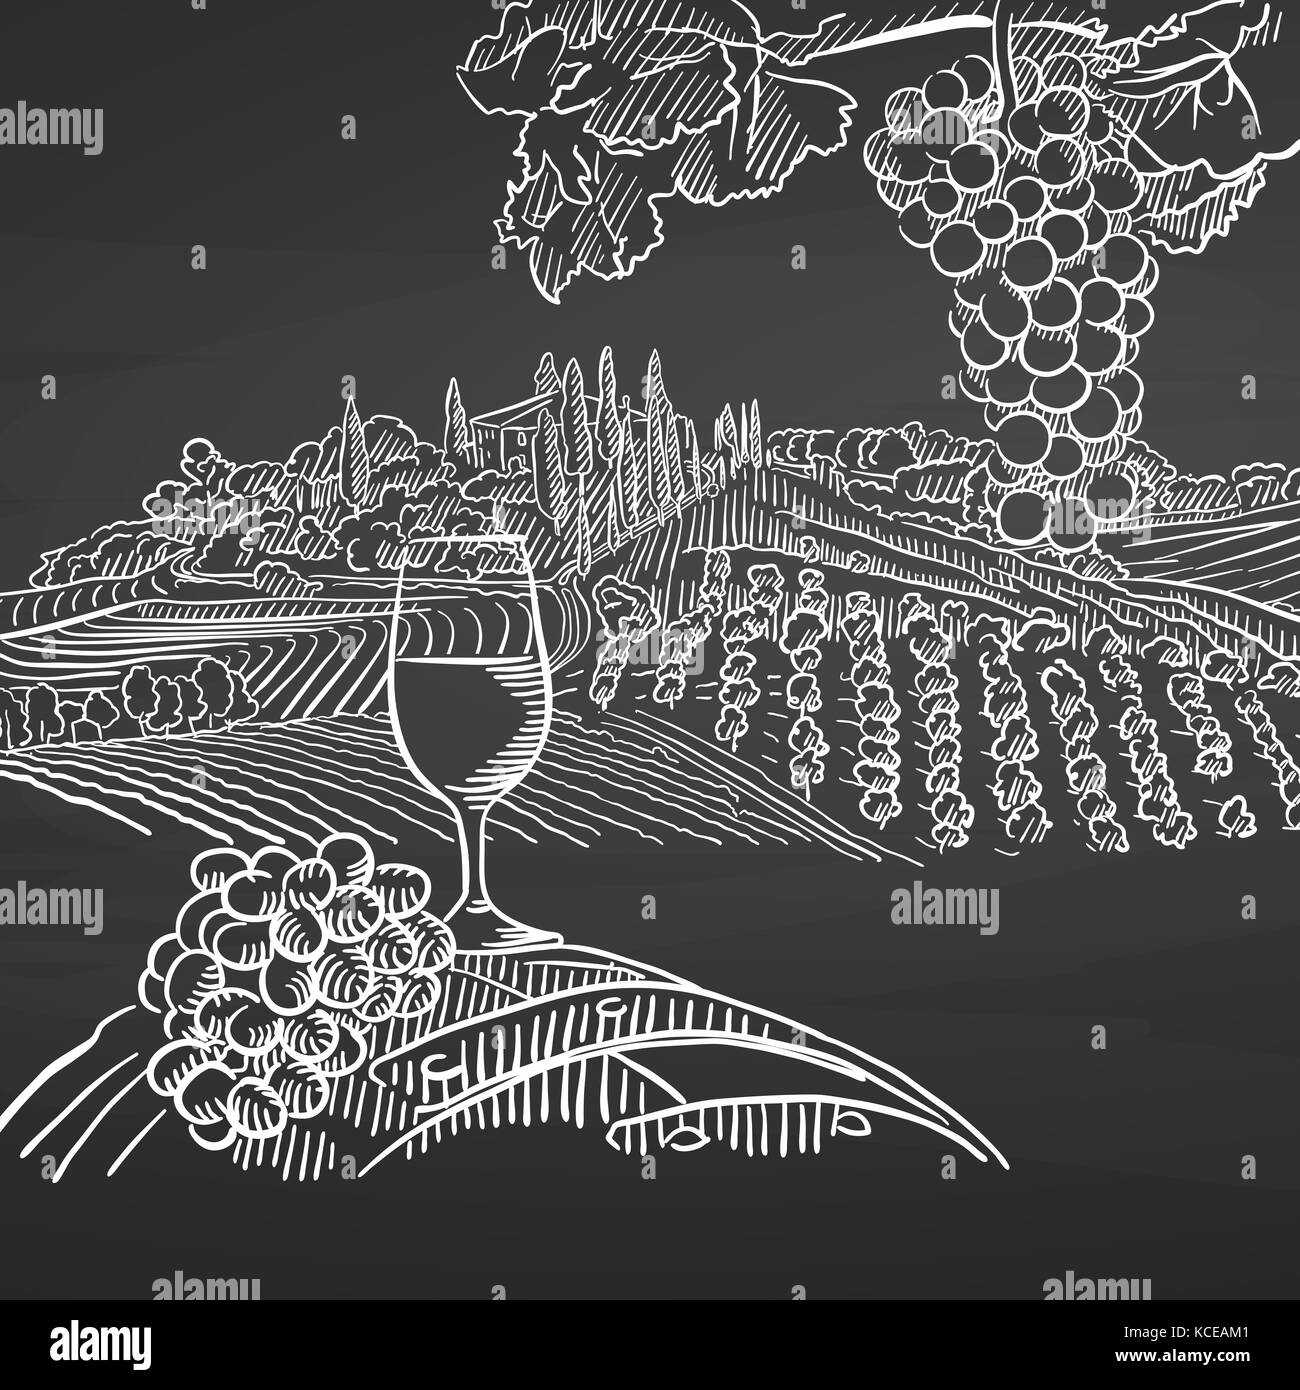 Vintage wine and landscape on chalkboard. Hand drawn healthy food sketch. Black and White Vector Drawing on Blackboard. Stock Photo